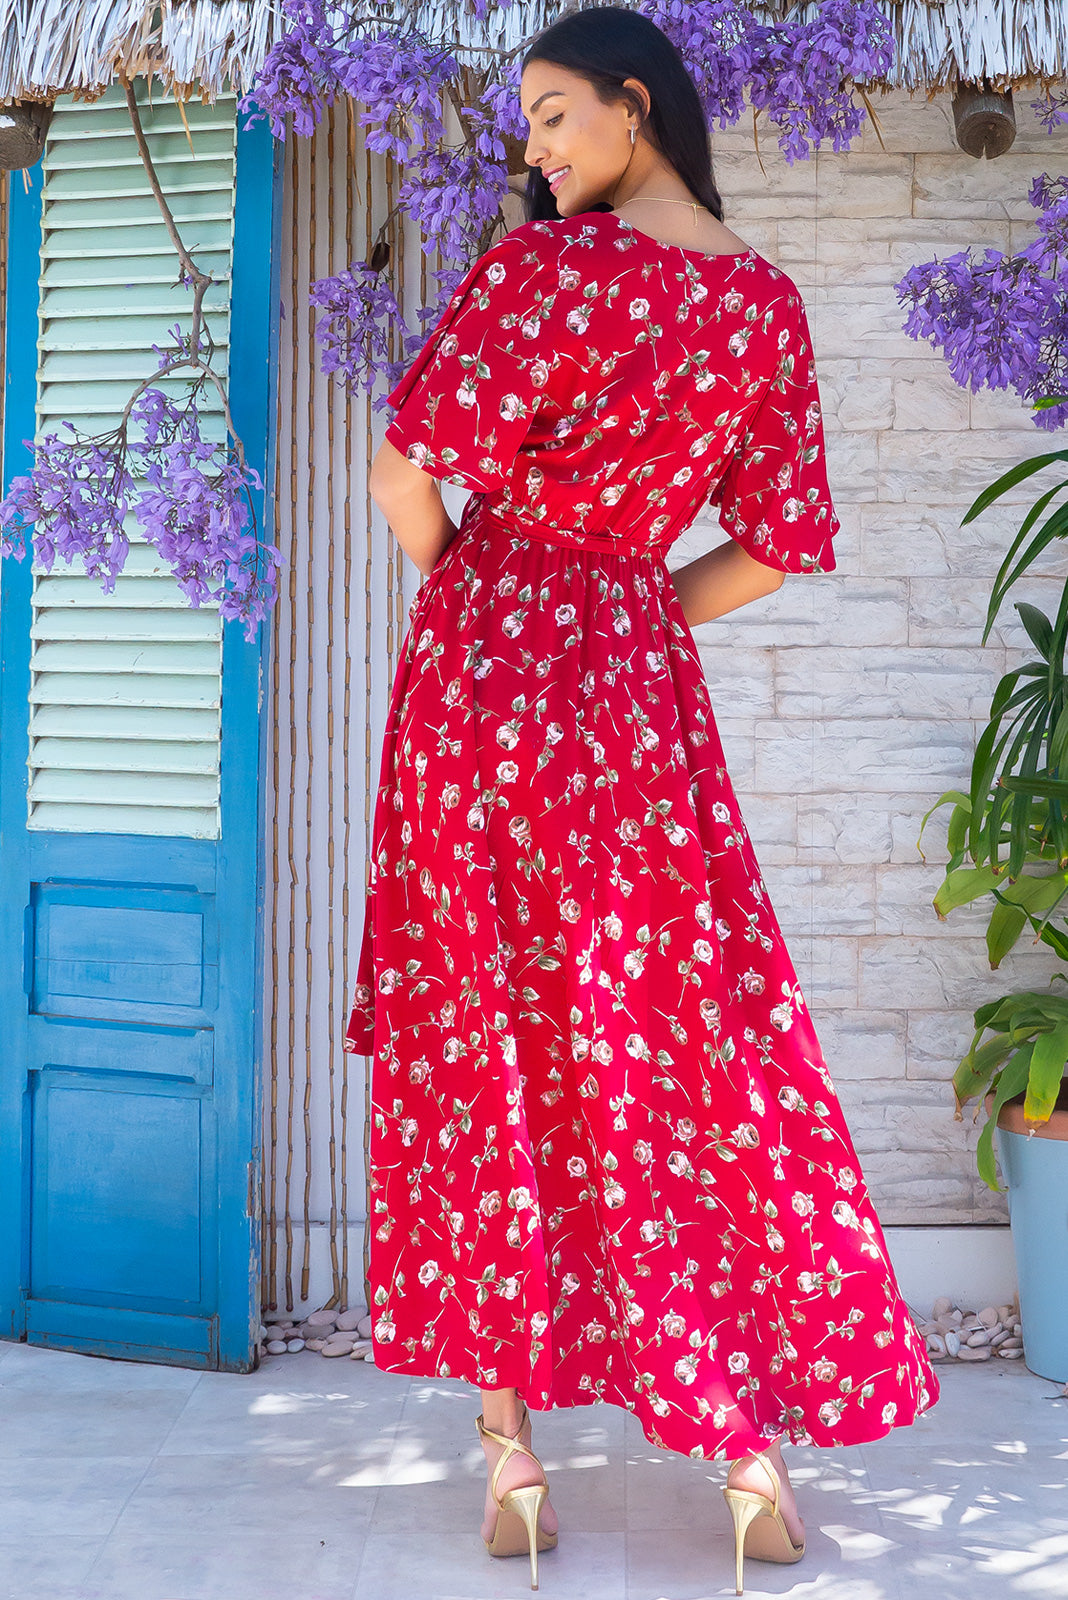 The Petal Red Rosebud Maxi Wrap Dress features plunging neckline, floaty petal sleeves, deep side pockets and 100 % rayon in red base with rose print.The Petal Red Rosebud Maxi Wrap Dress features plunging neckline, floaty petal sleeves, deep side pockets and 100 % rayon in red base with rose print.